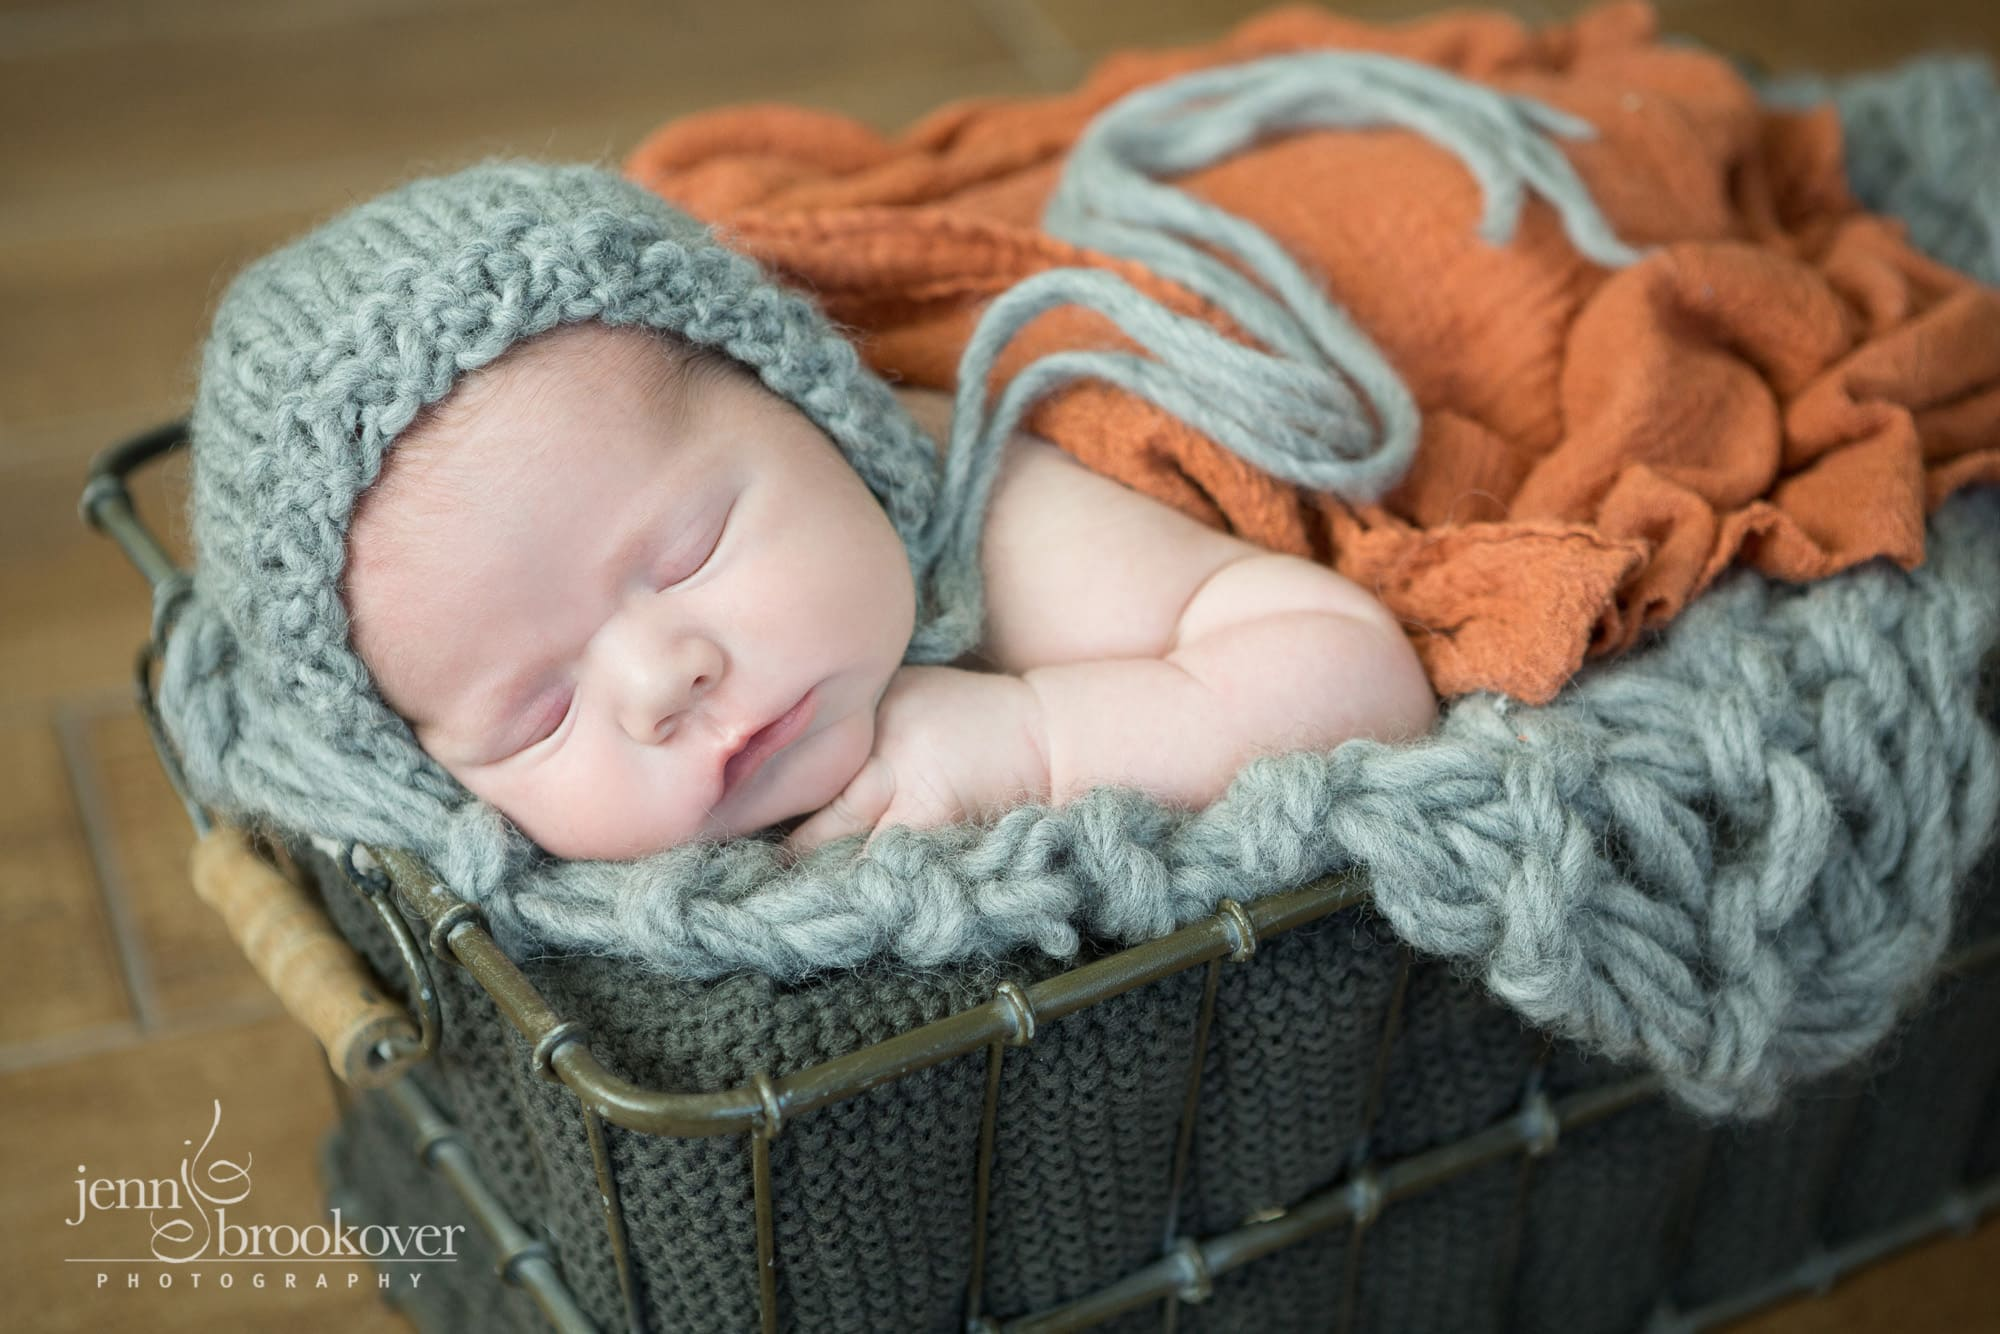 newborn boy in gray bonnet on knitted blanket